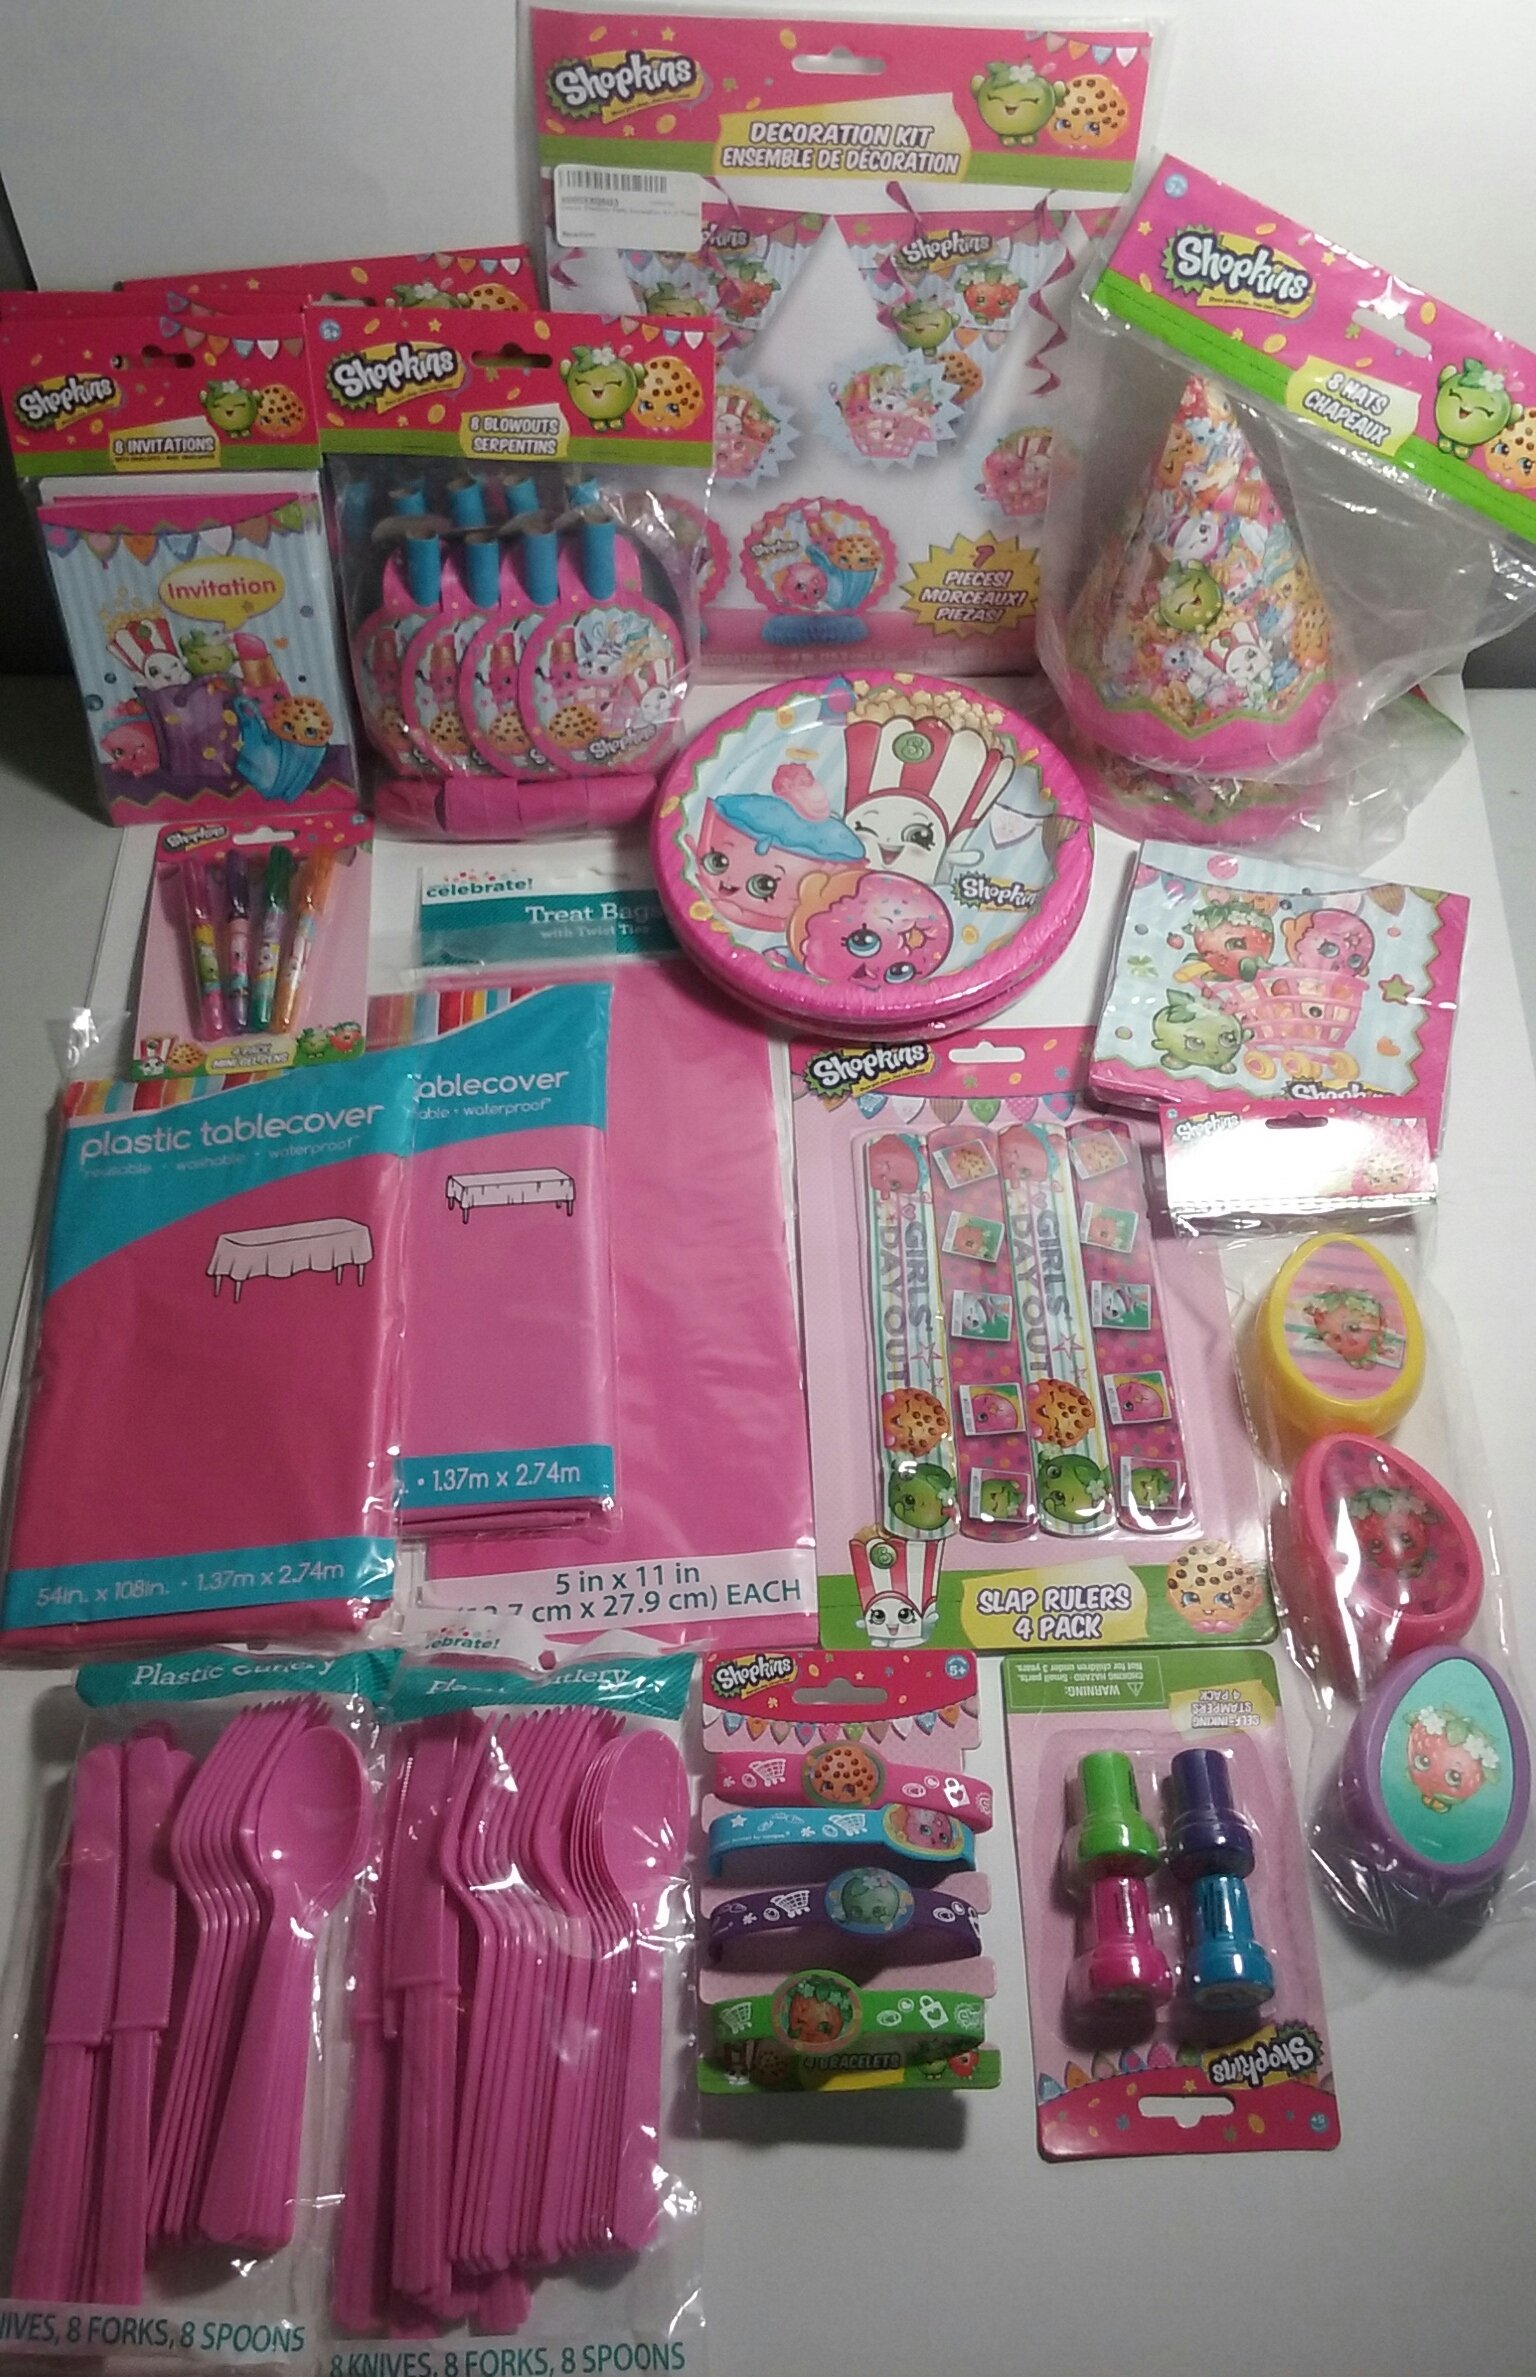 Huge Mega Shopkins Birthday Bundle For 16 Guests Including Invitations, Tableware, Hats, Blow-outs, Decorations and Party Favors by Moose